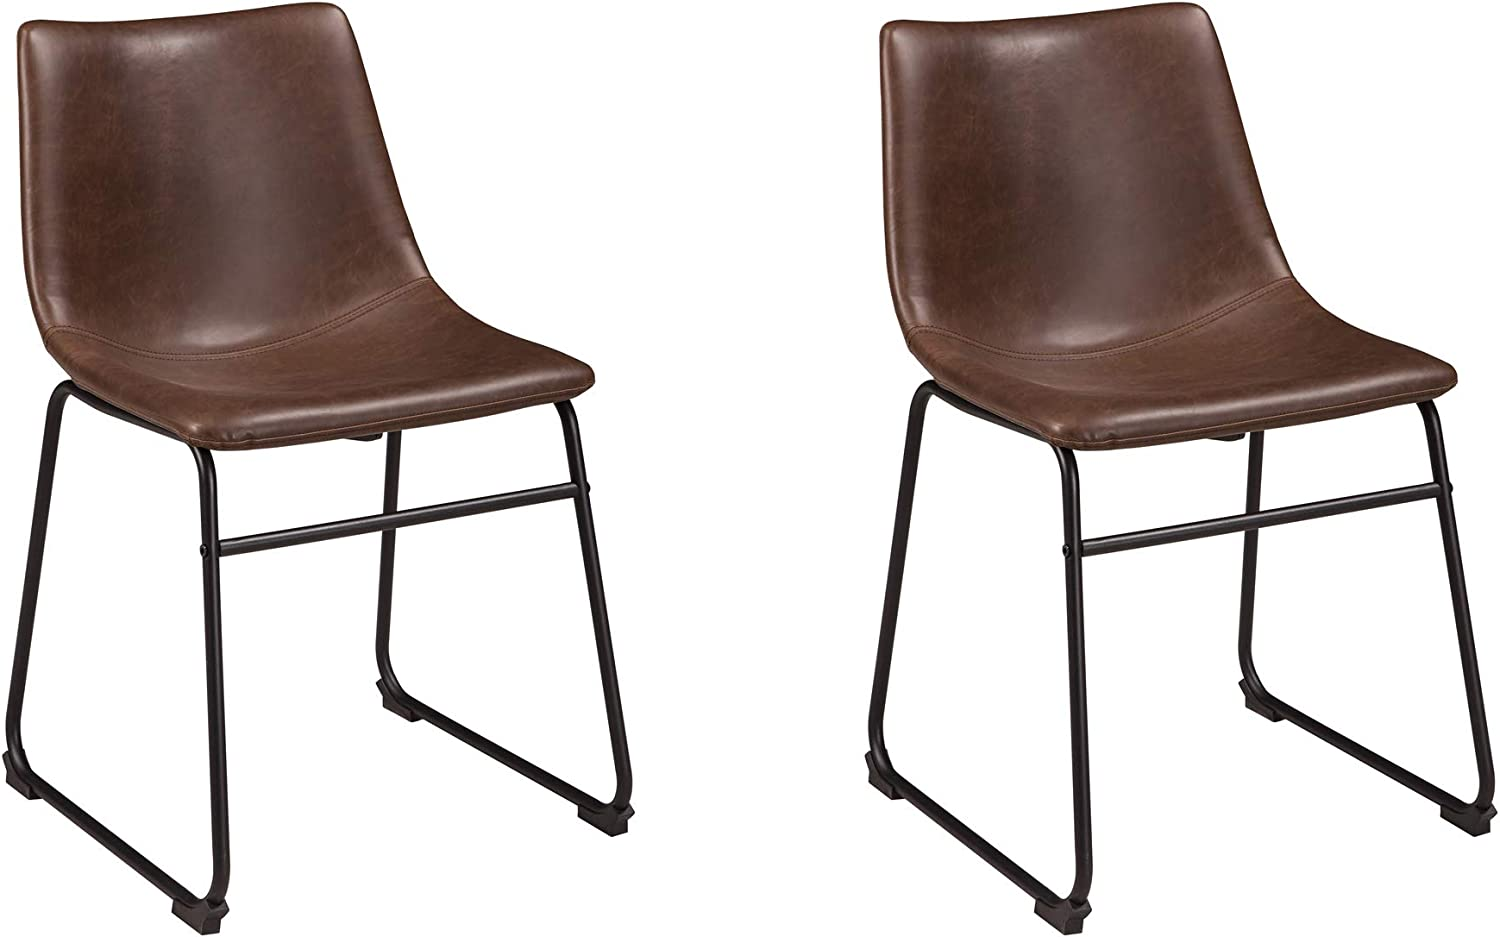 Amazon Com Signature Design By Ashley Centiar Dining Chair Set Of 2 Black And Brown Chairs